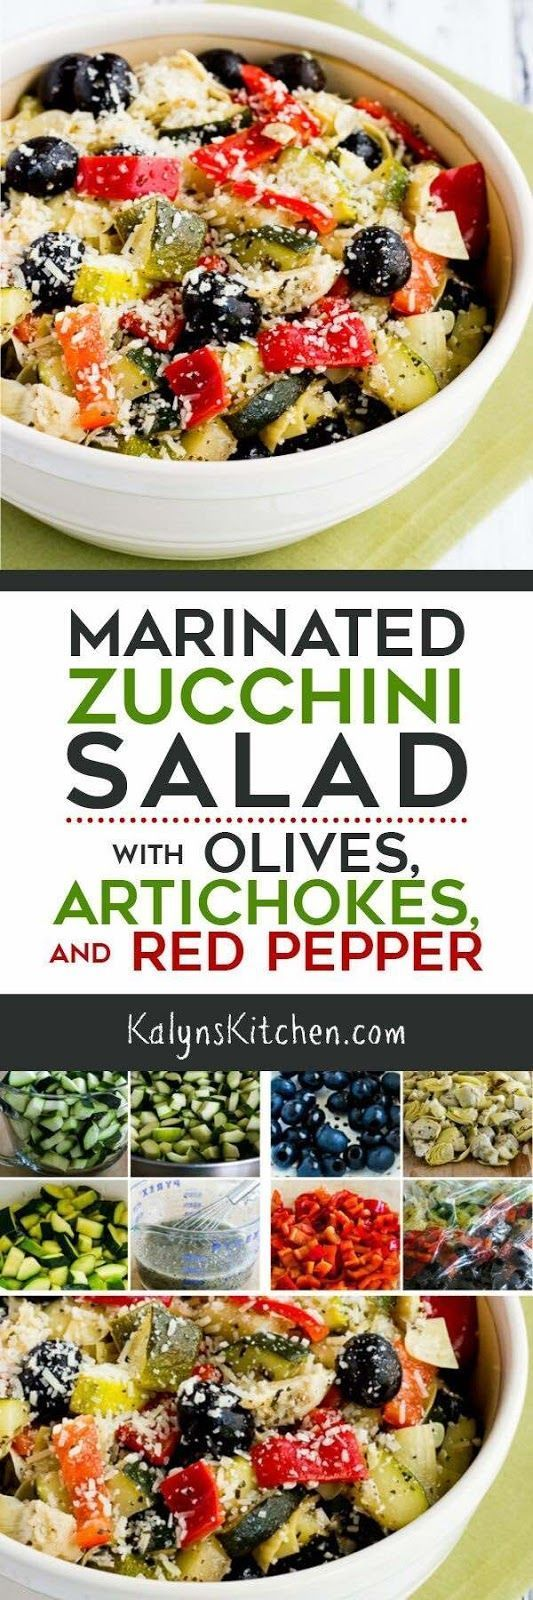 and Red Pepper (Video) #Artichokes #Marinated #oli…